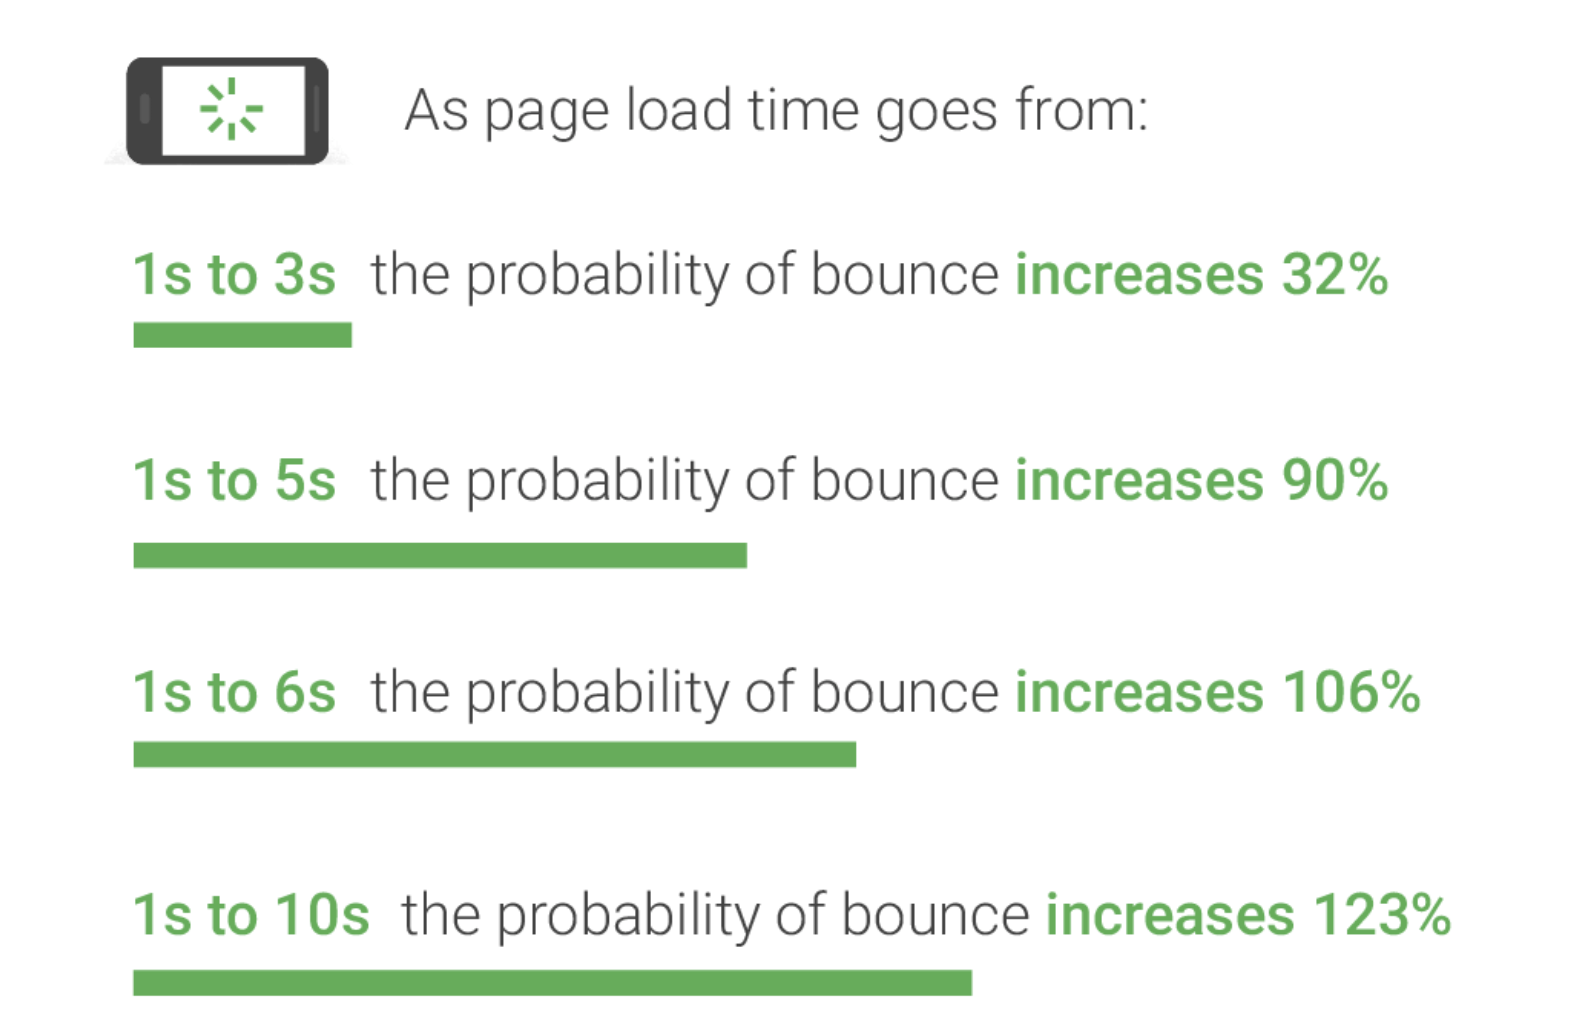 As page load time goes from: 1s to 3s the probability of bounce increases 32%; 1s to 5s the probability of bounce increases 90%; 1s to 6s the probability of bounce increases 106%; 1s to 10s the probability of bounce increases 123%.